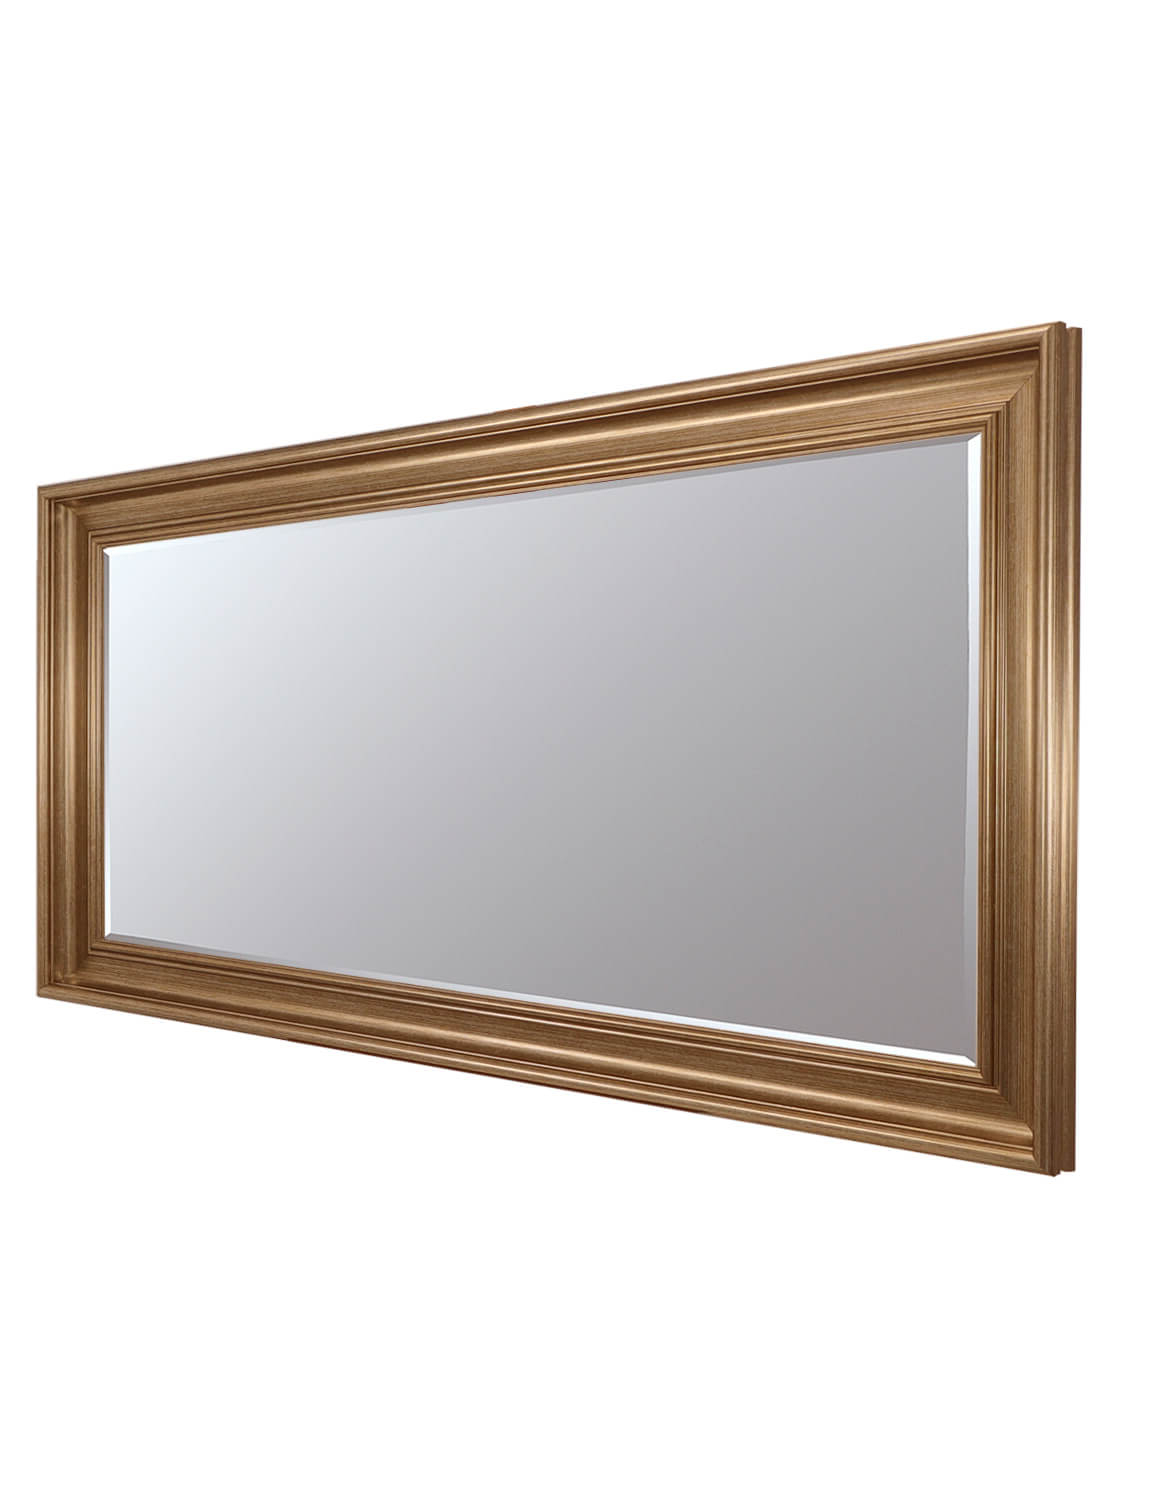 Current Long Silver Wall Mirrors Pertaining To Luxe Gold 77x138cm Long Wall Mirror (View 6 of 20)